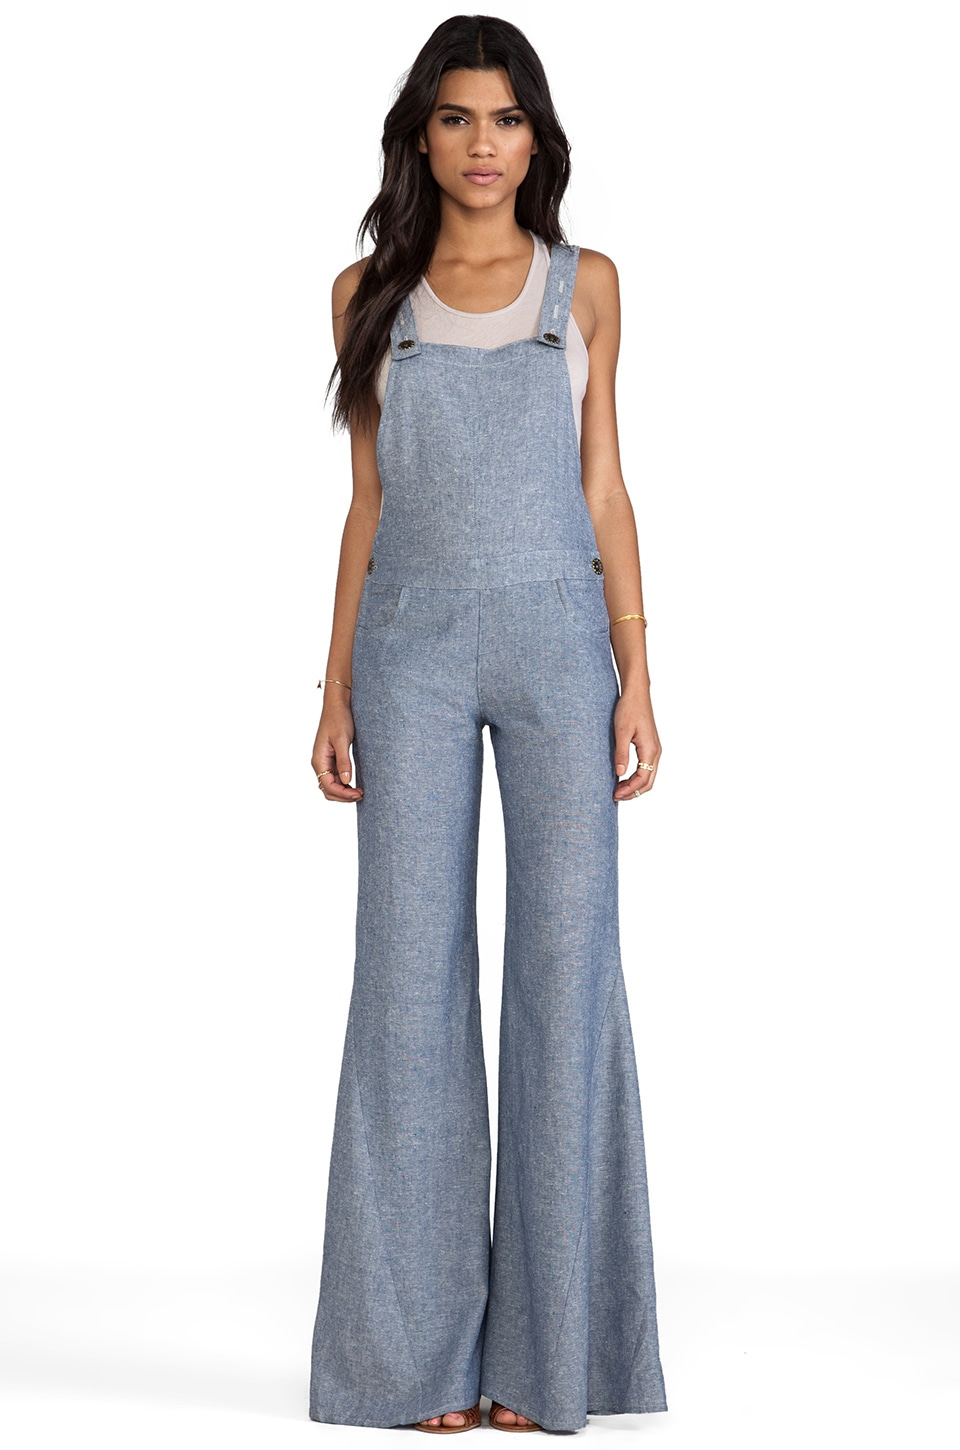 Show Me Your Mumu Billy Bob Overalls in Washed Chambray